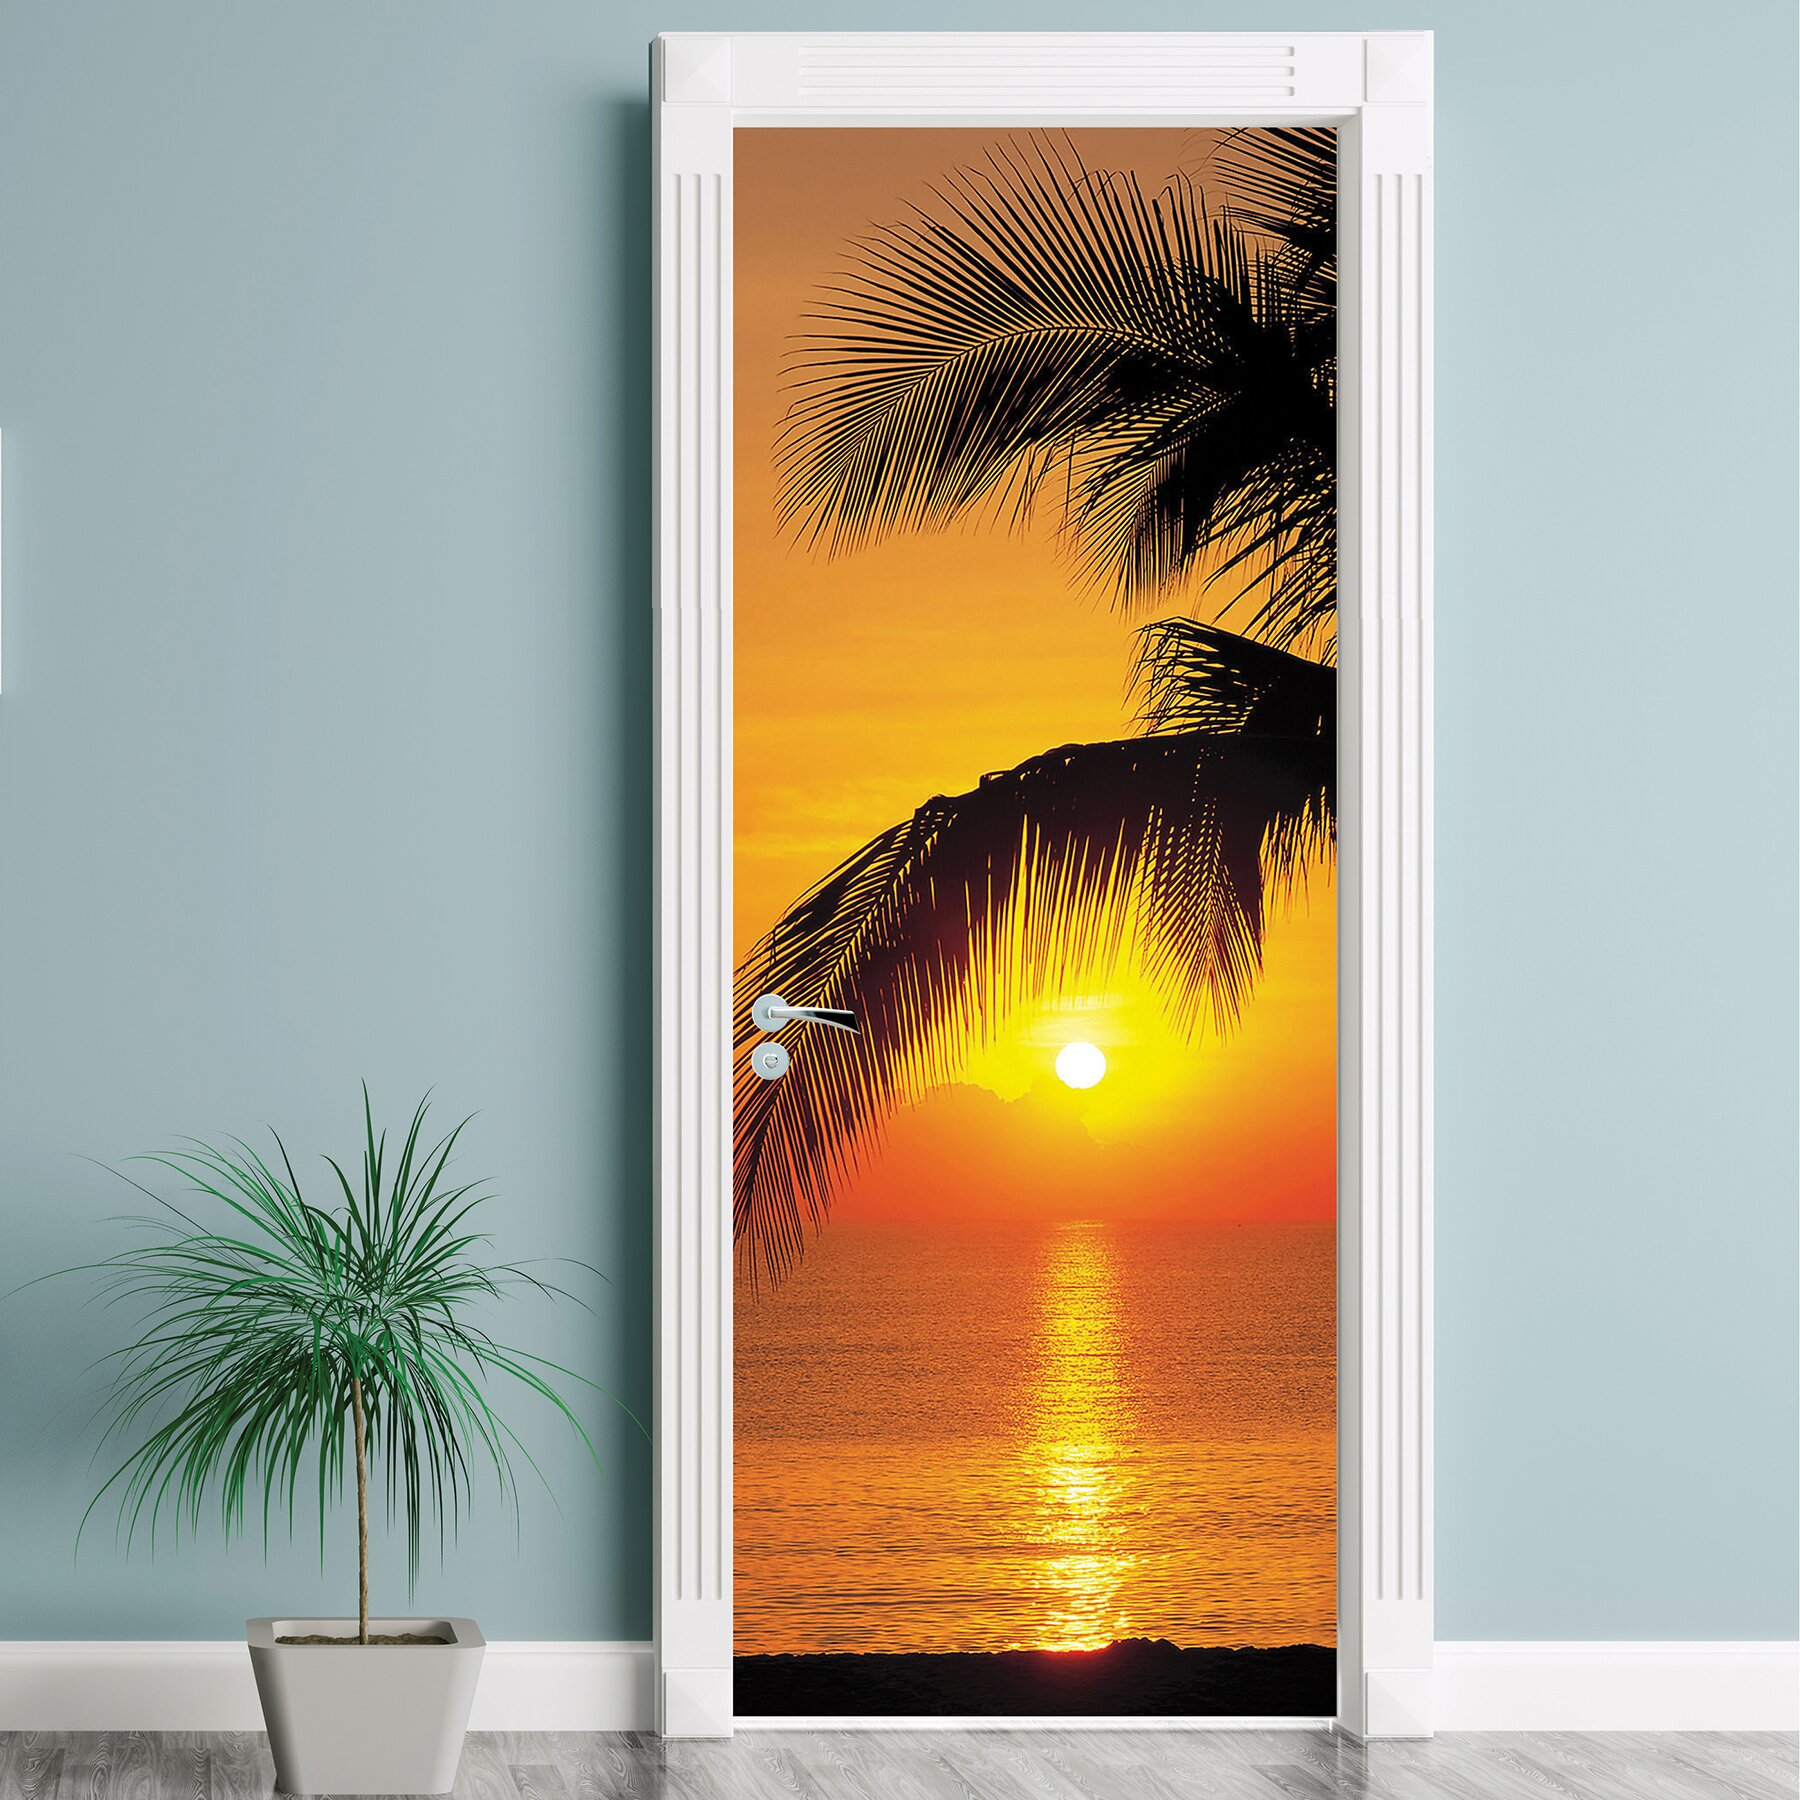 Brewster home fashions komar palmy beach sunrise wall for Brewster home fashions komar wall mural